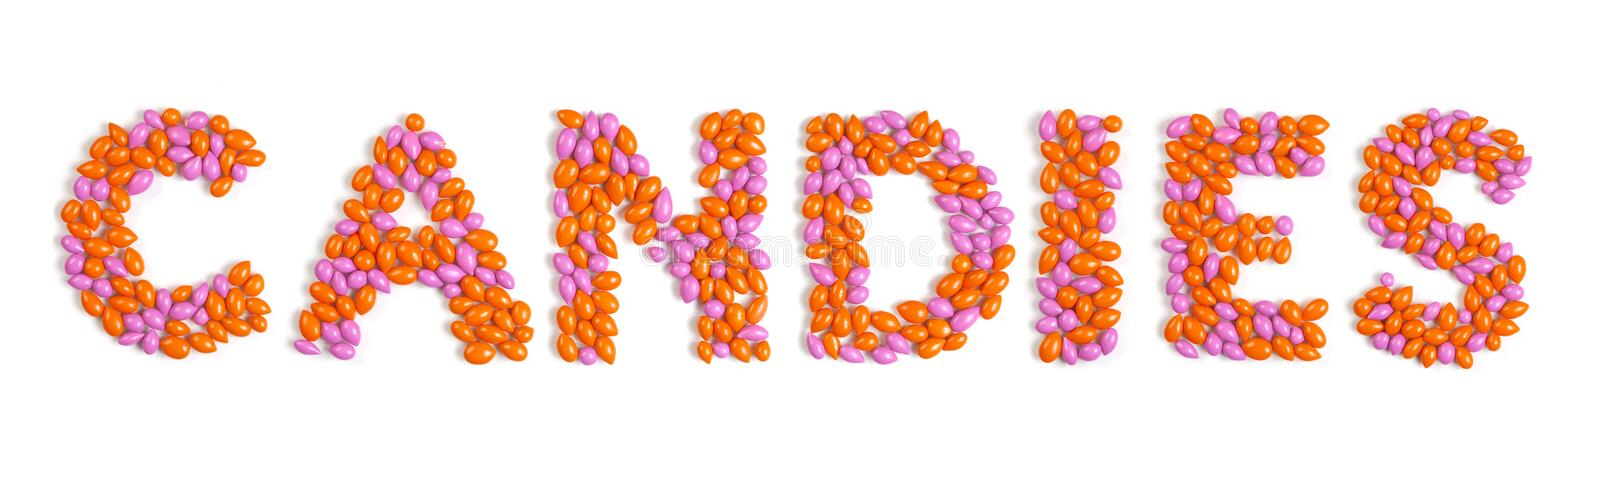 Download Word Candies Made From Colorful Dragee Stock Image - Image: 17205239